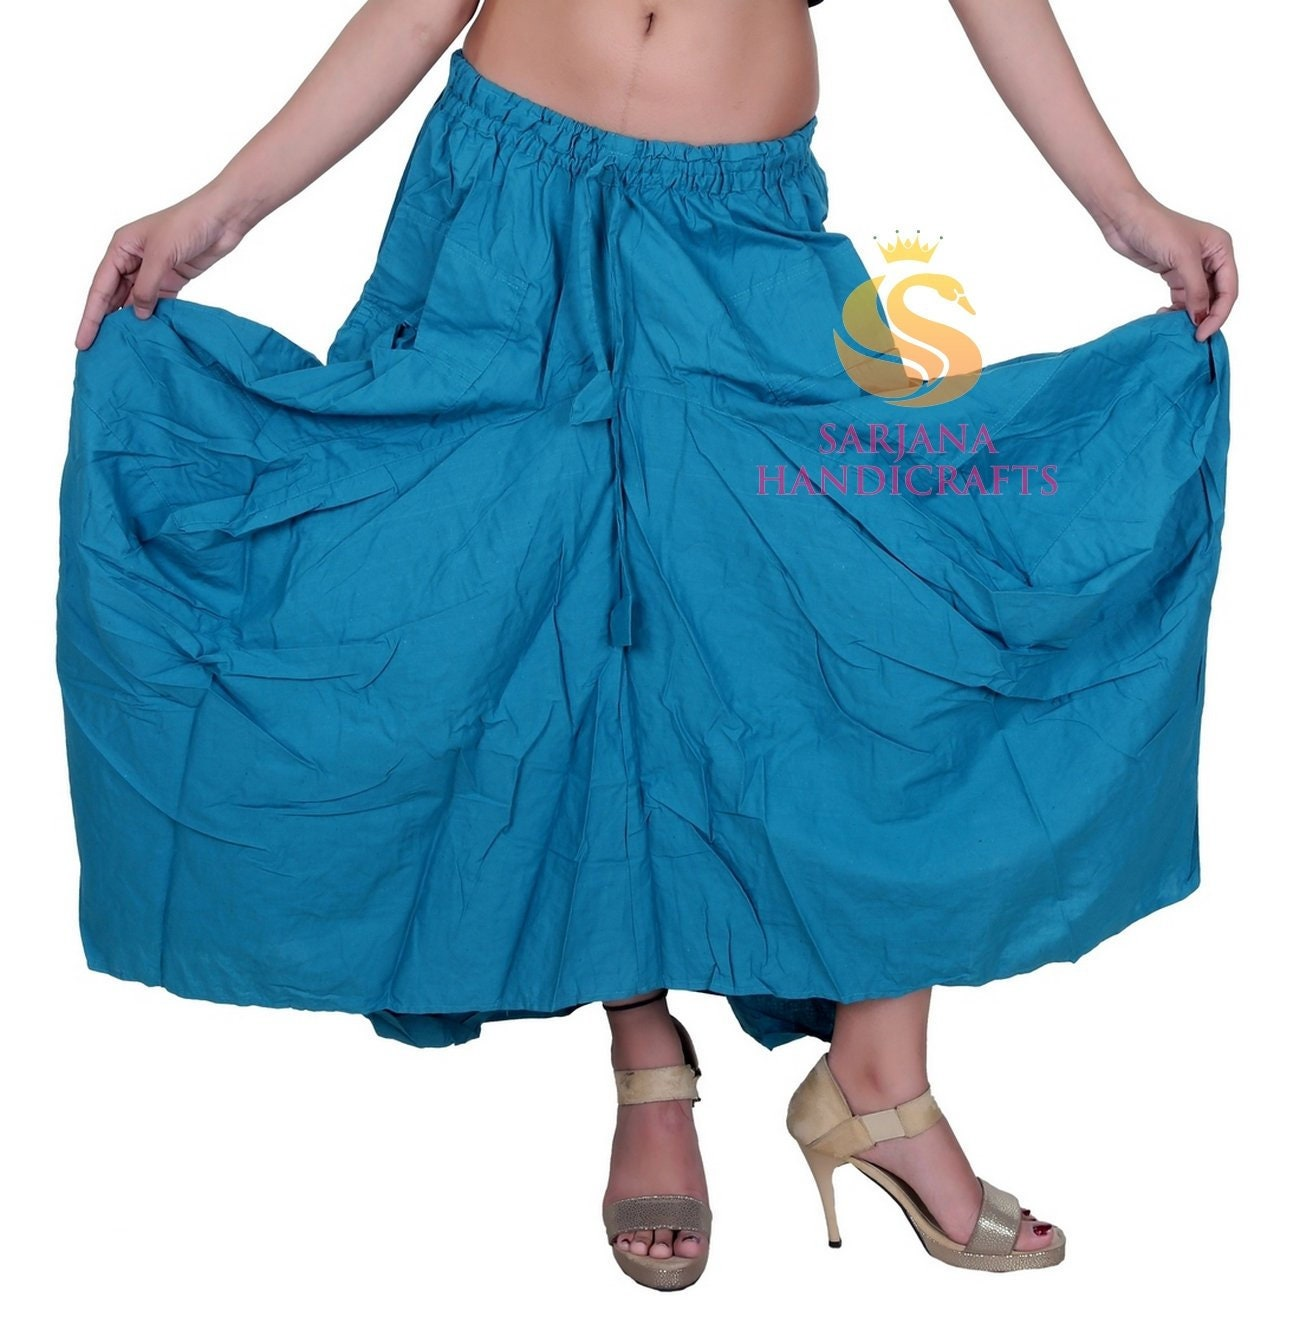 1622363e845 Women Cotton Pockets Turquoise Skirt Vintage Stretch Afghani